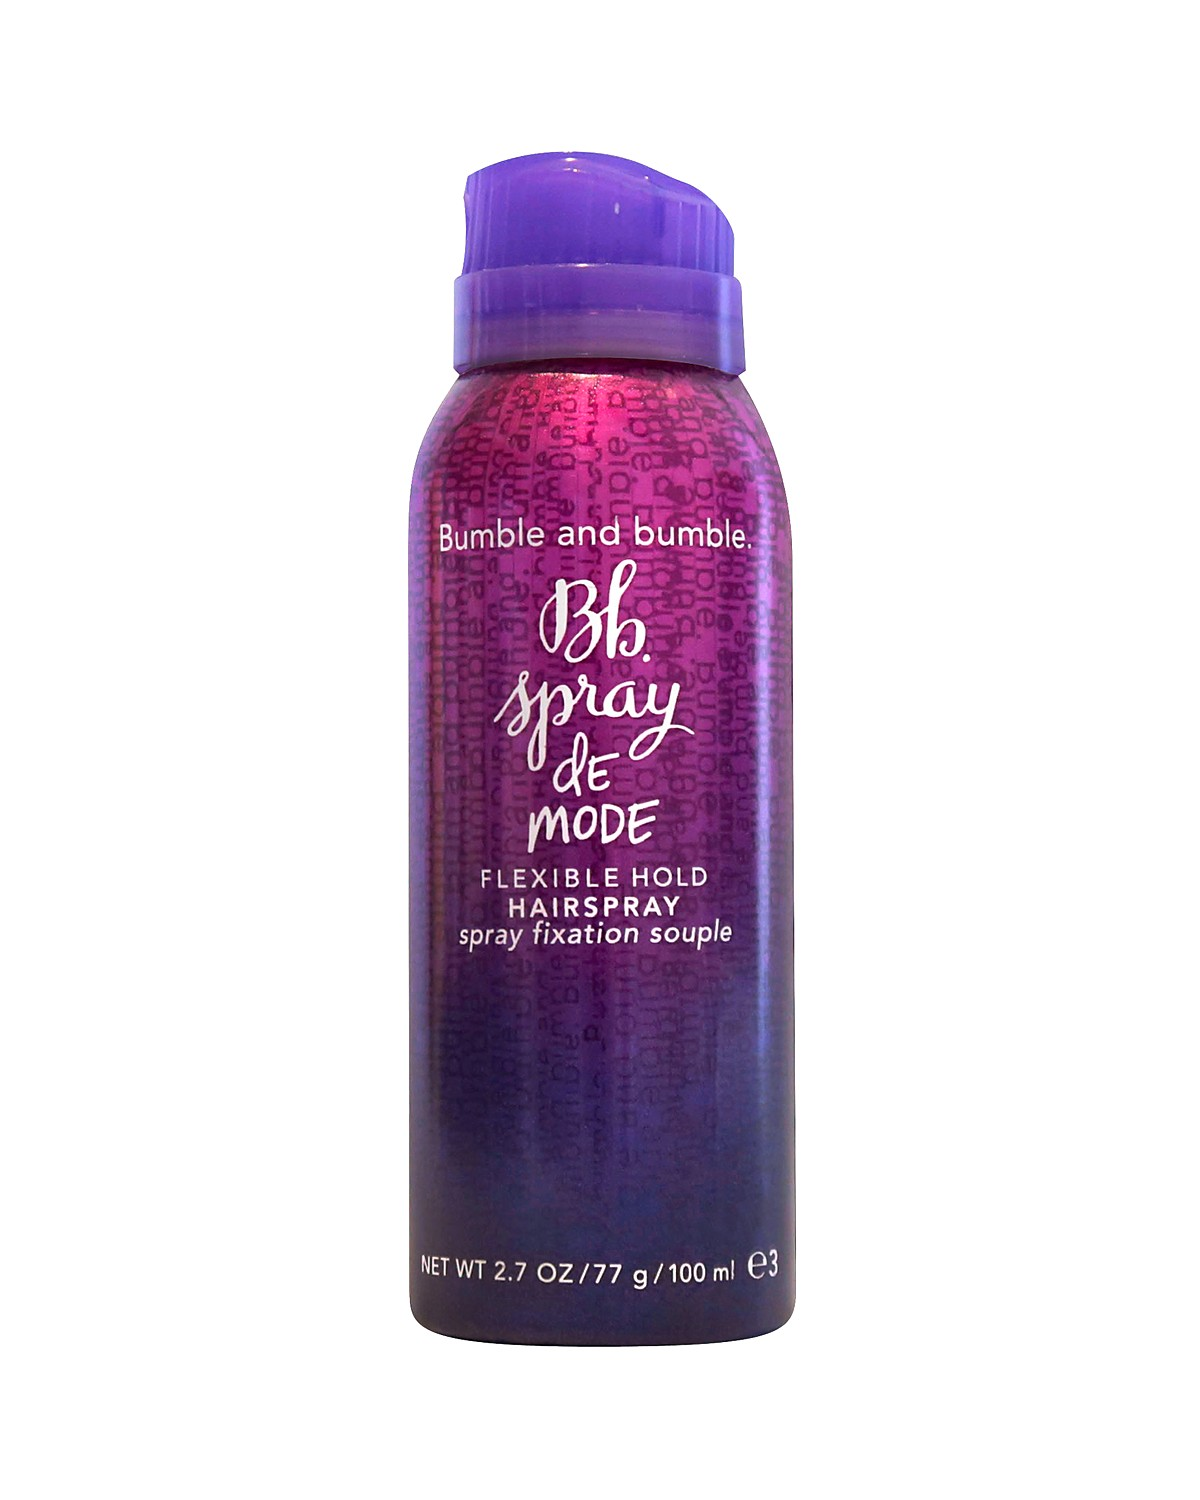 Bumble & Bumble Spray de Mode  ($16)